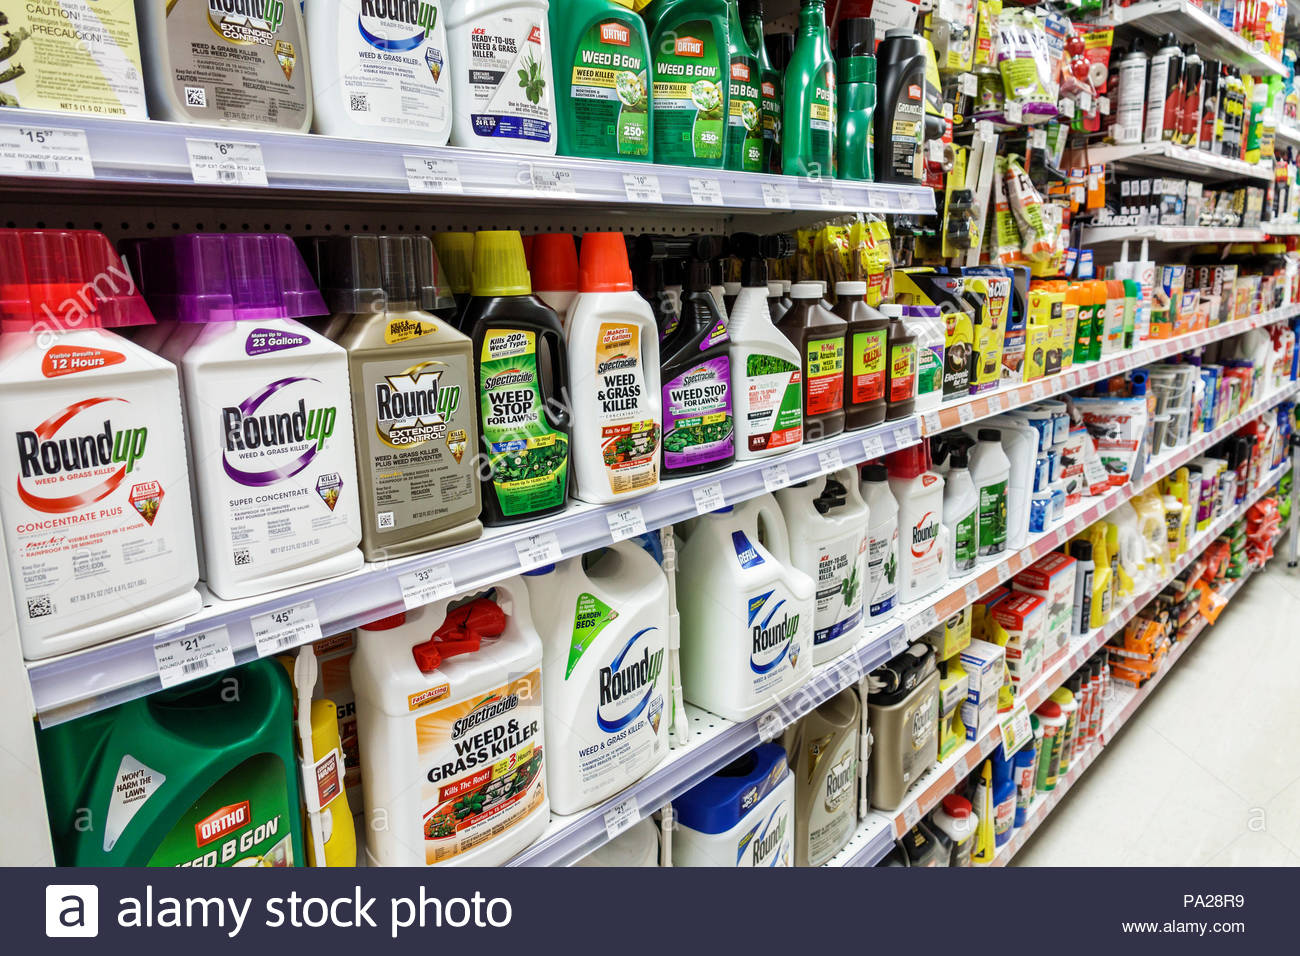 Orlando Florida Ace Hardware pesticides insecticides poisons insect sprays weed killer Roundup brand shelves display sale interior - Stock Image